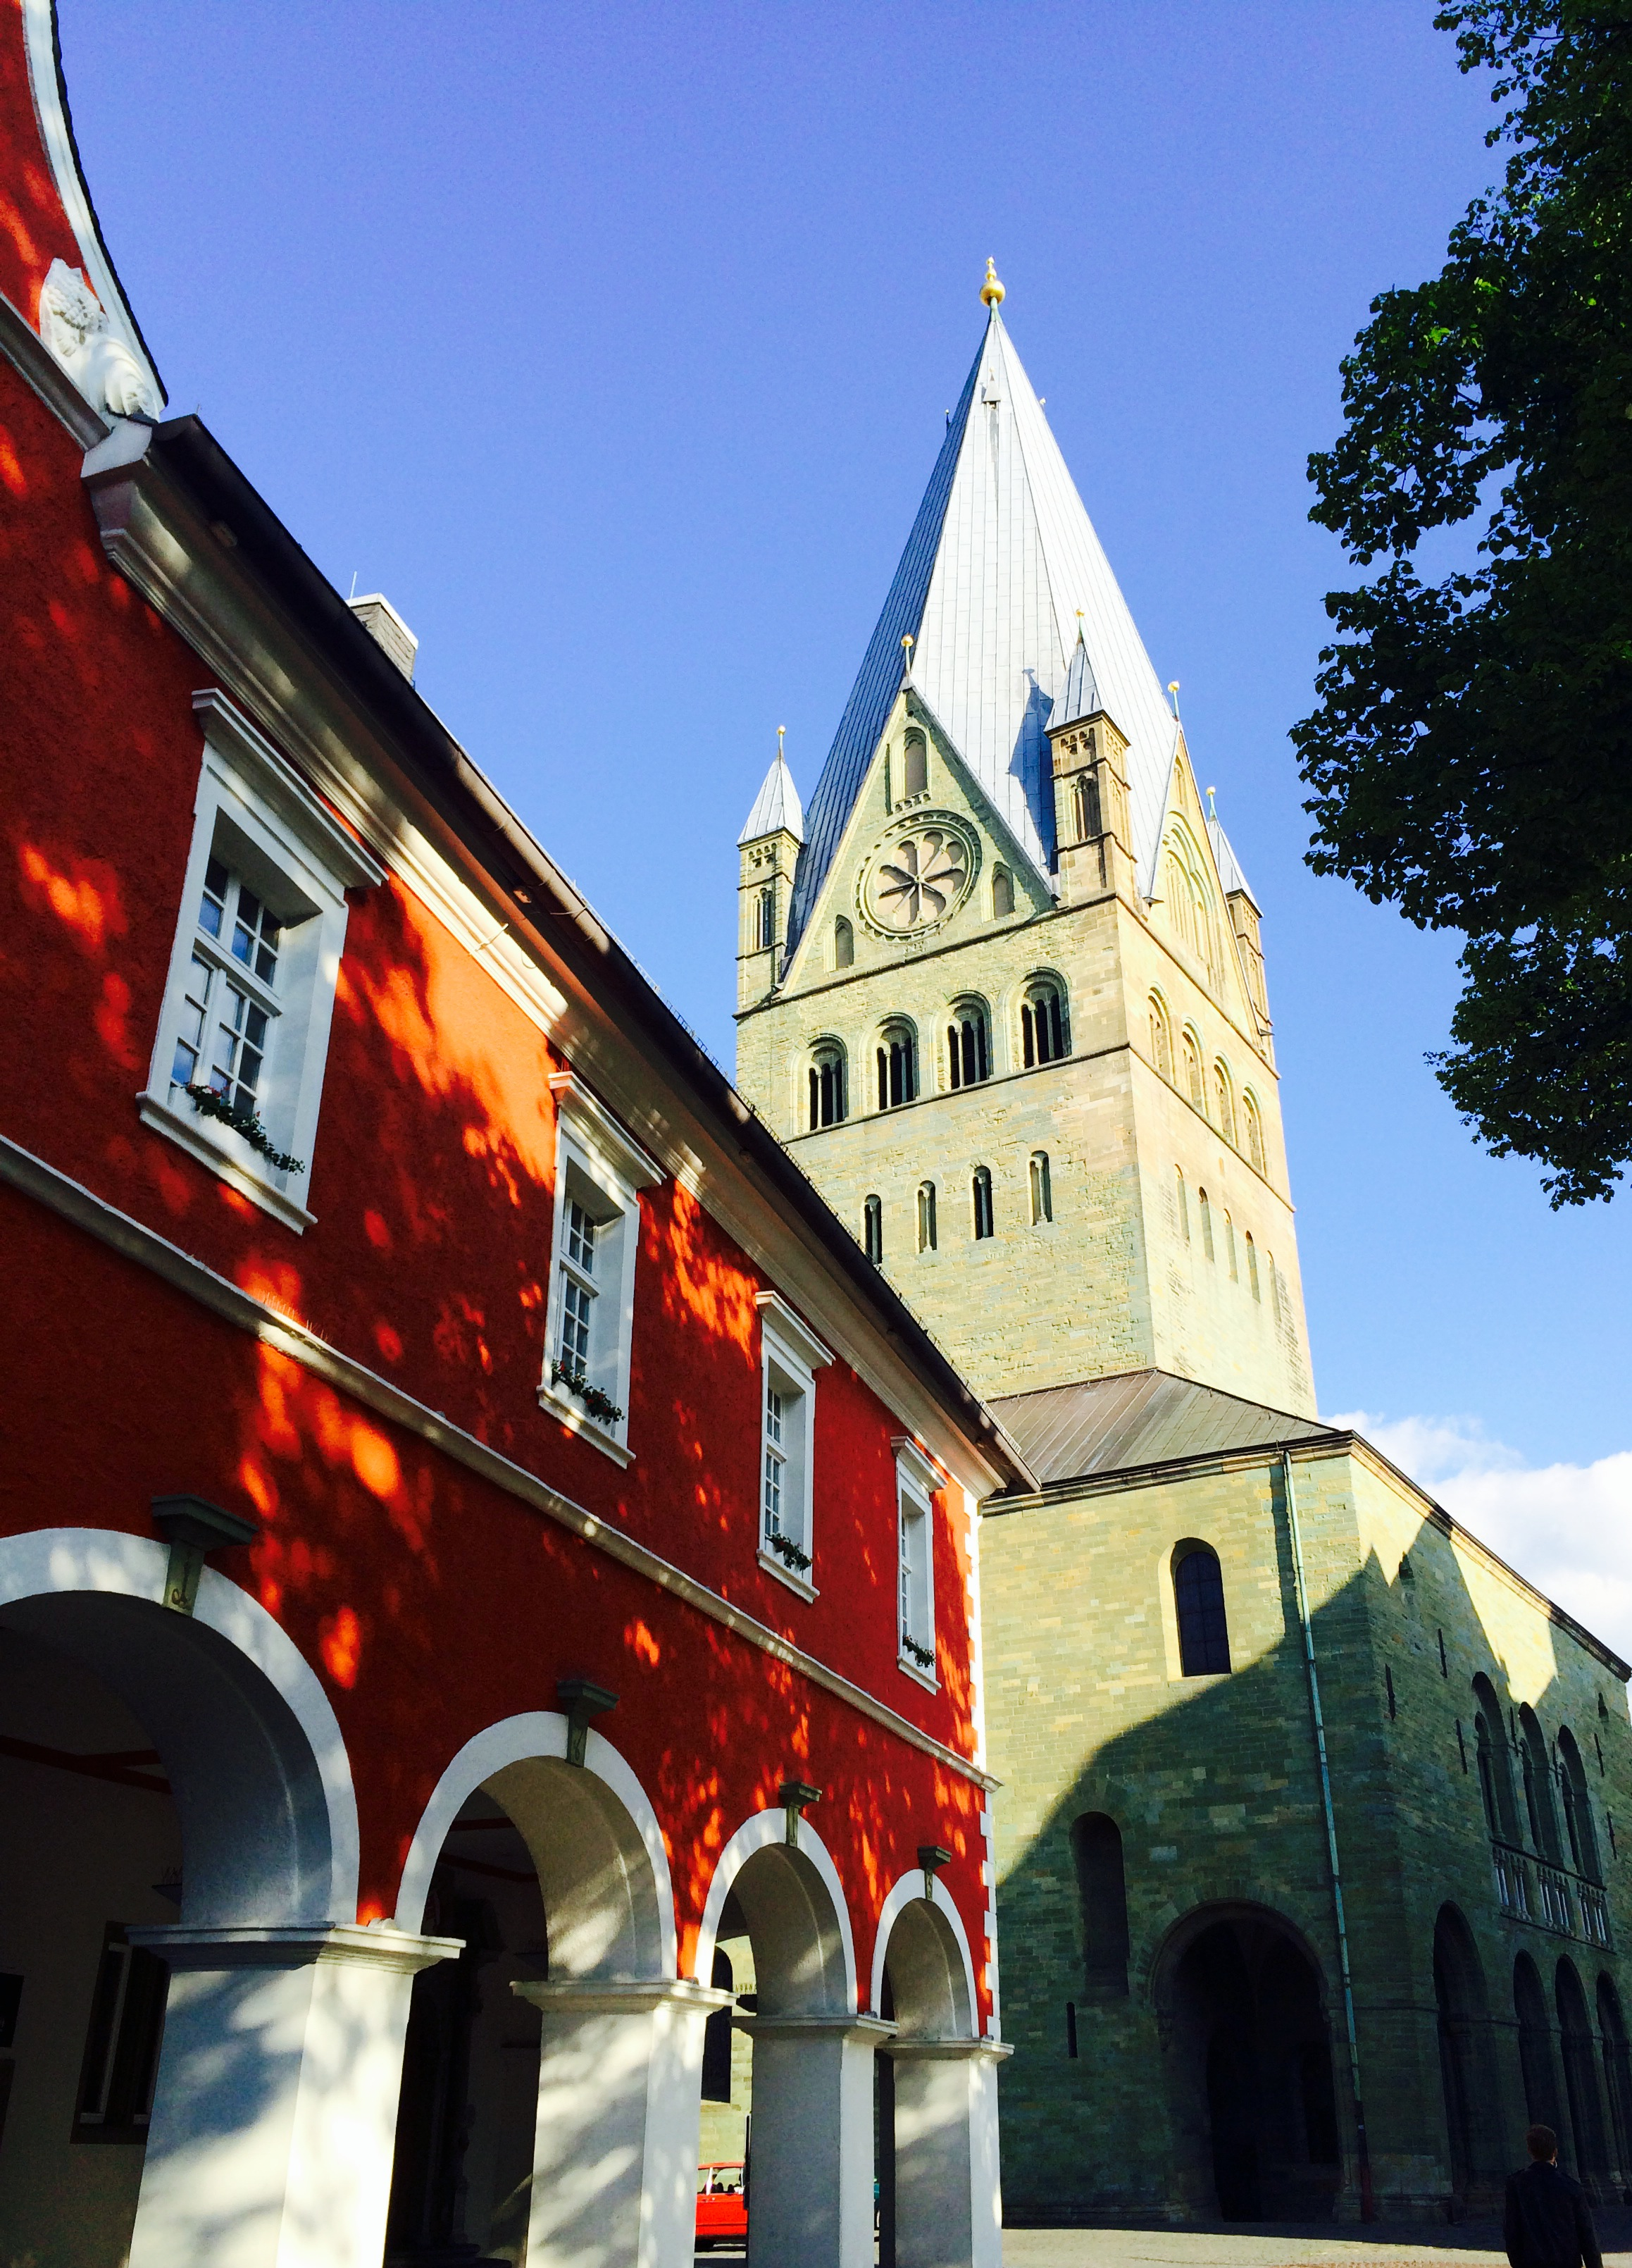 Soest Kirche rotes Haus